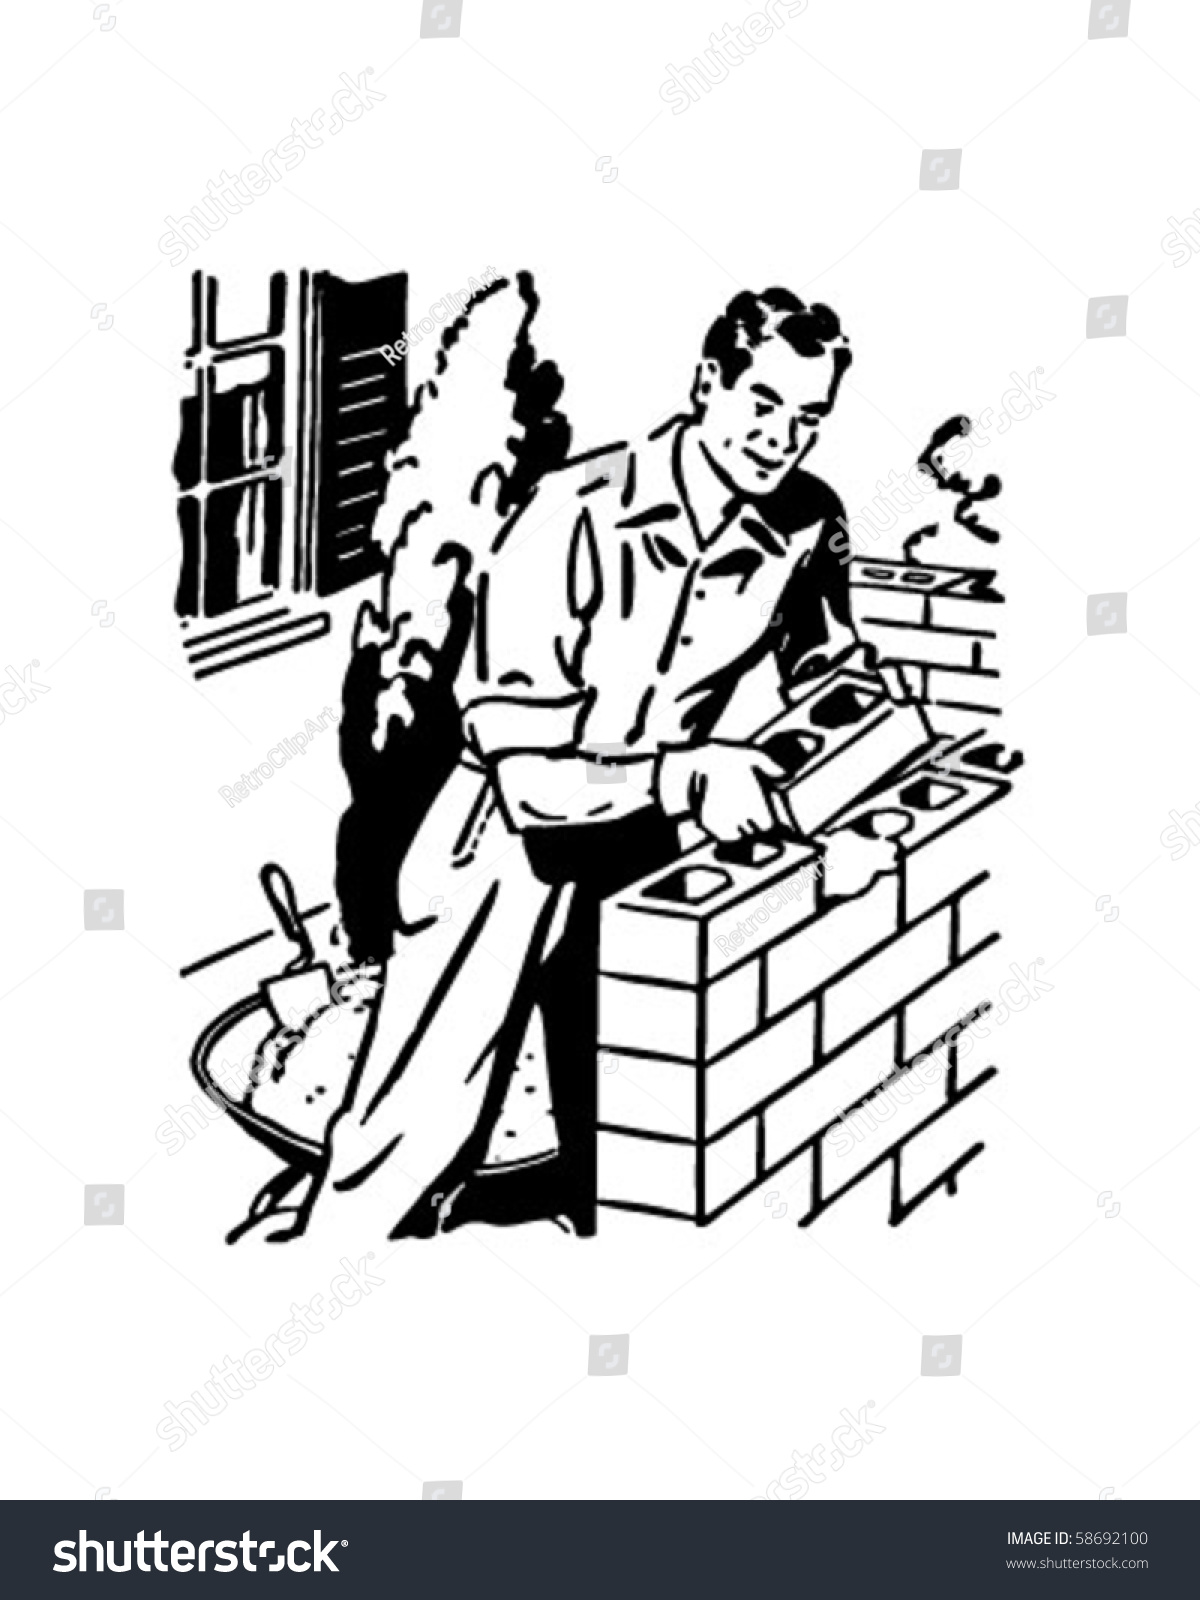 Bricklayer Retro Clip Art Stock Vector 58692100 - Shutterstock